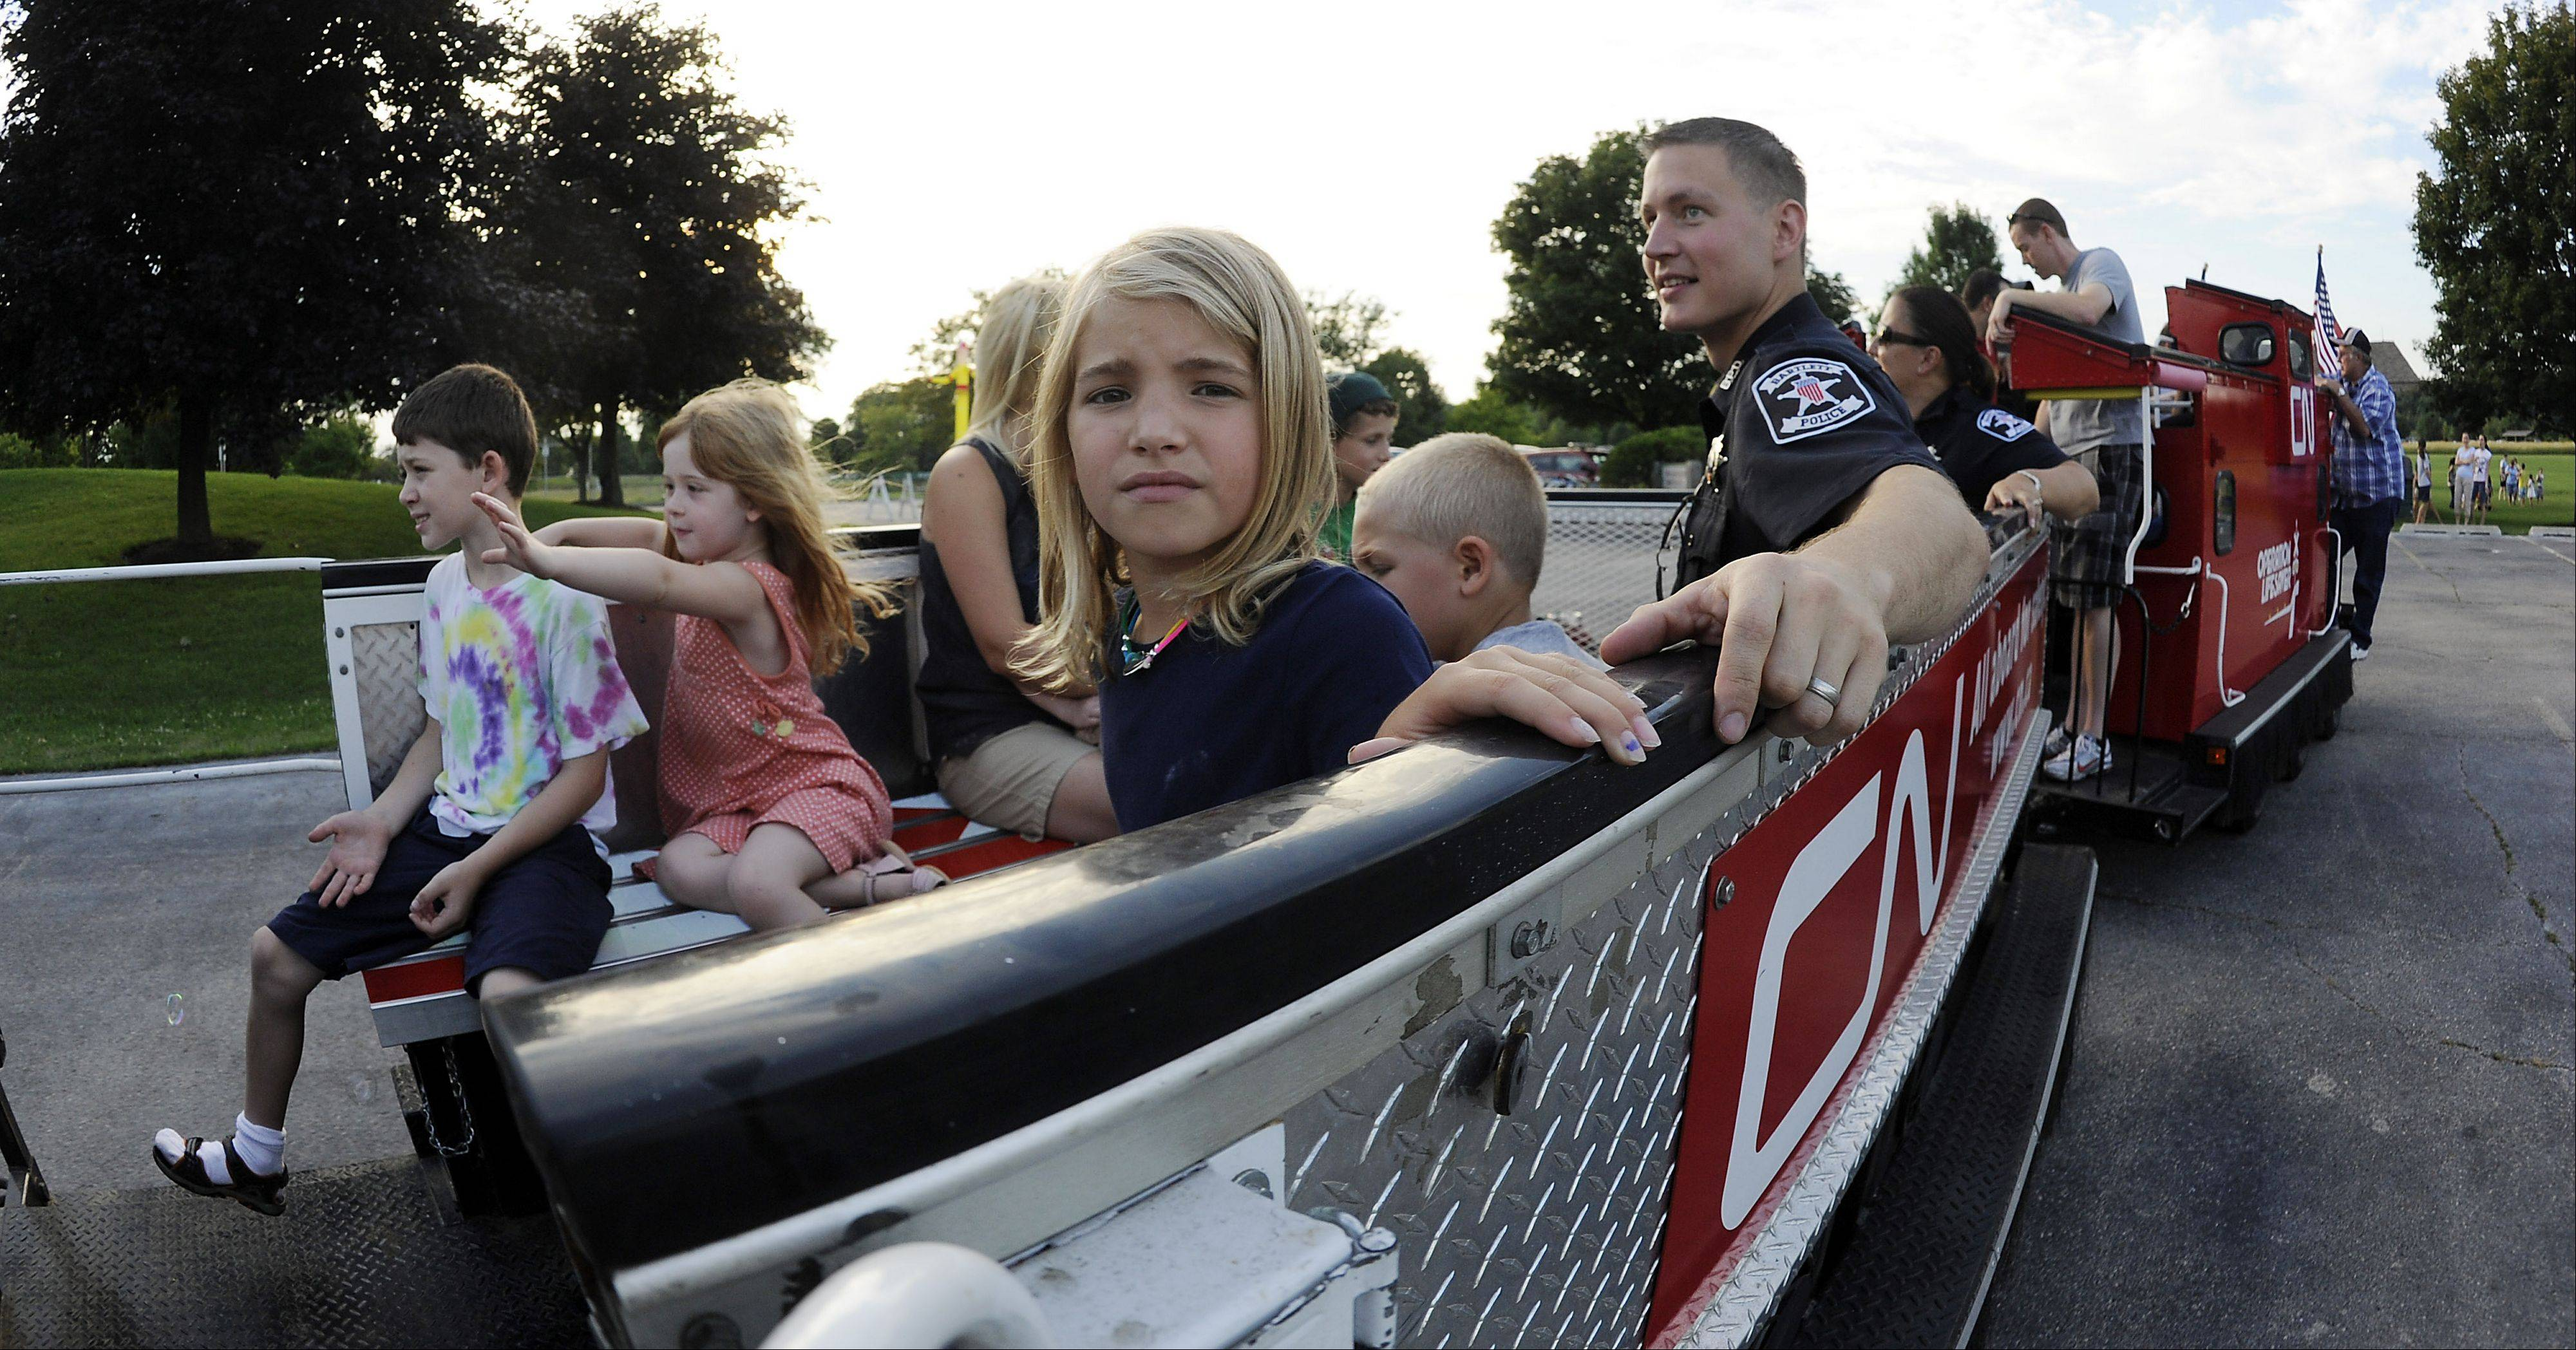 Olivia Kyes, 8, of Kansas rides the miniature Canadian National locomotive called Little Obie as part of Bartlett's celebration of National Night Out. Kyes is in town visiting her grandparents.